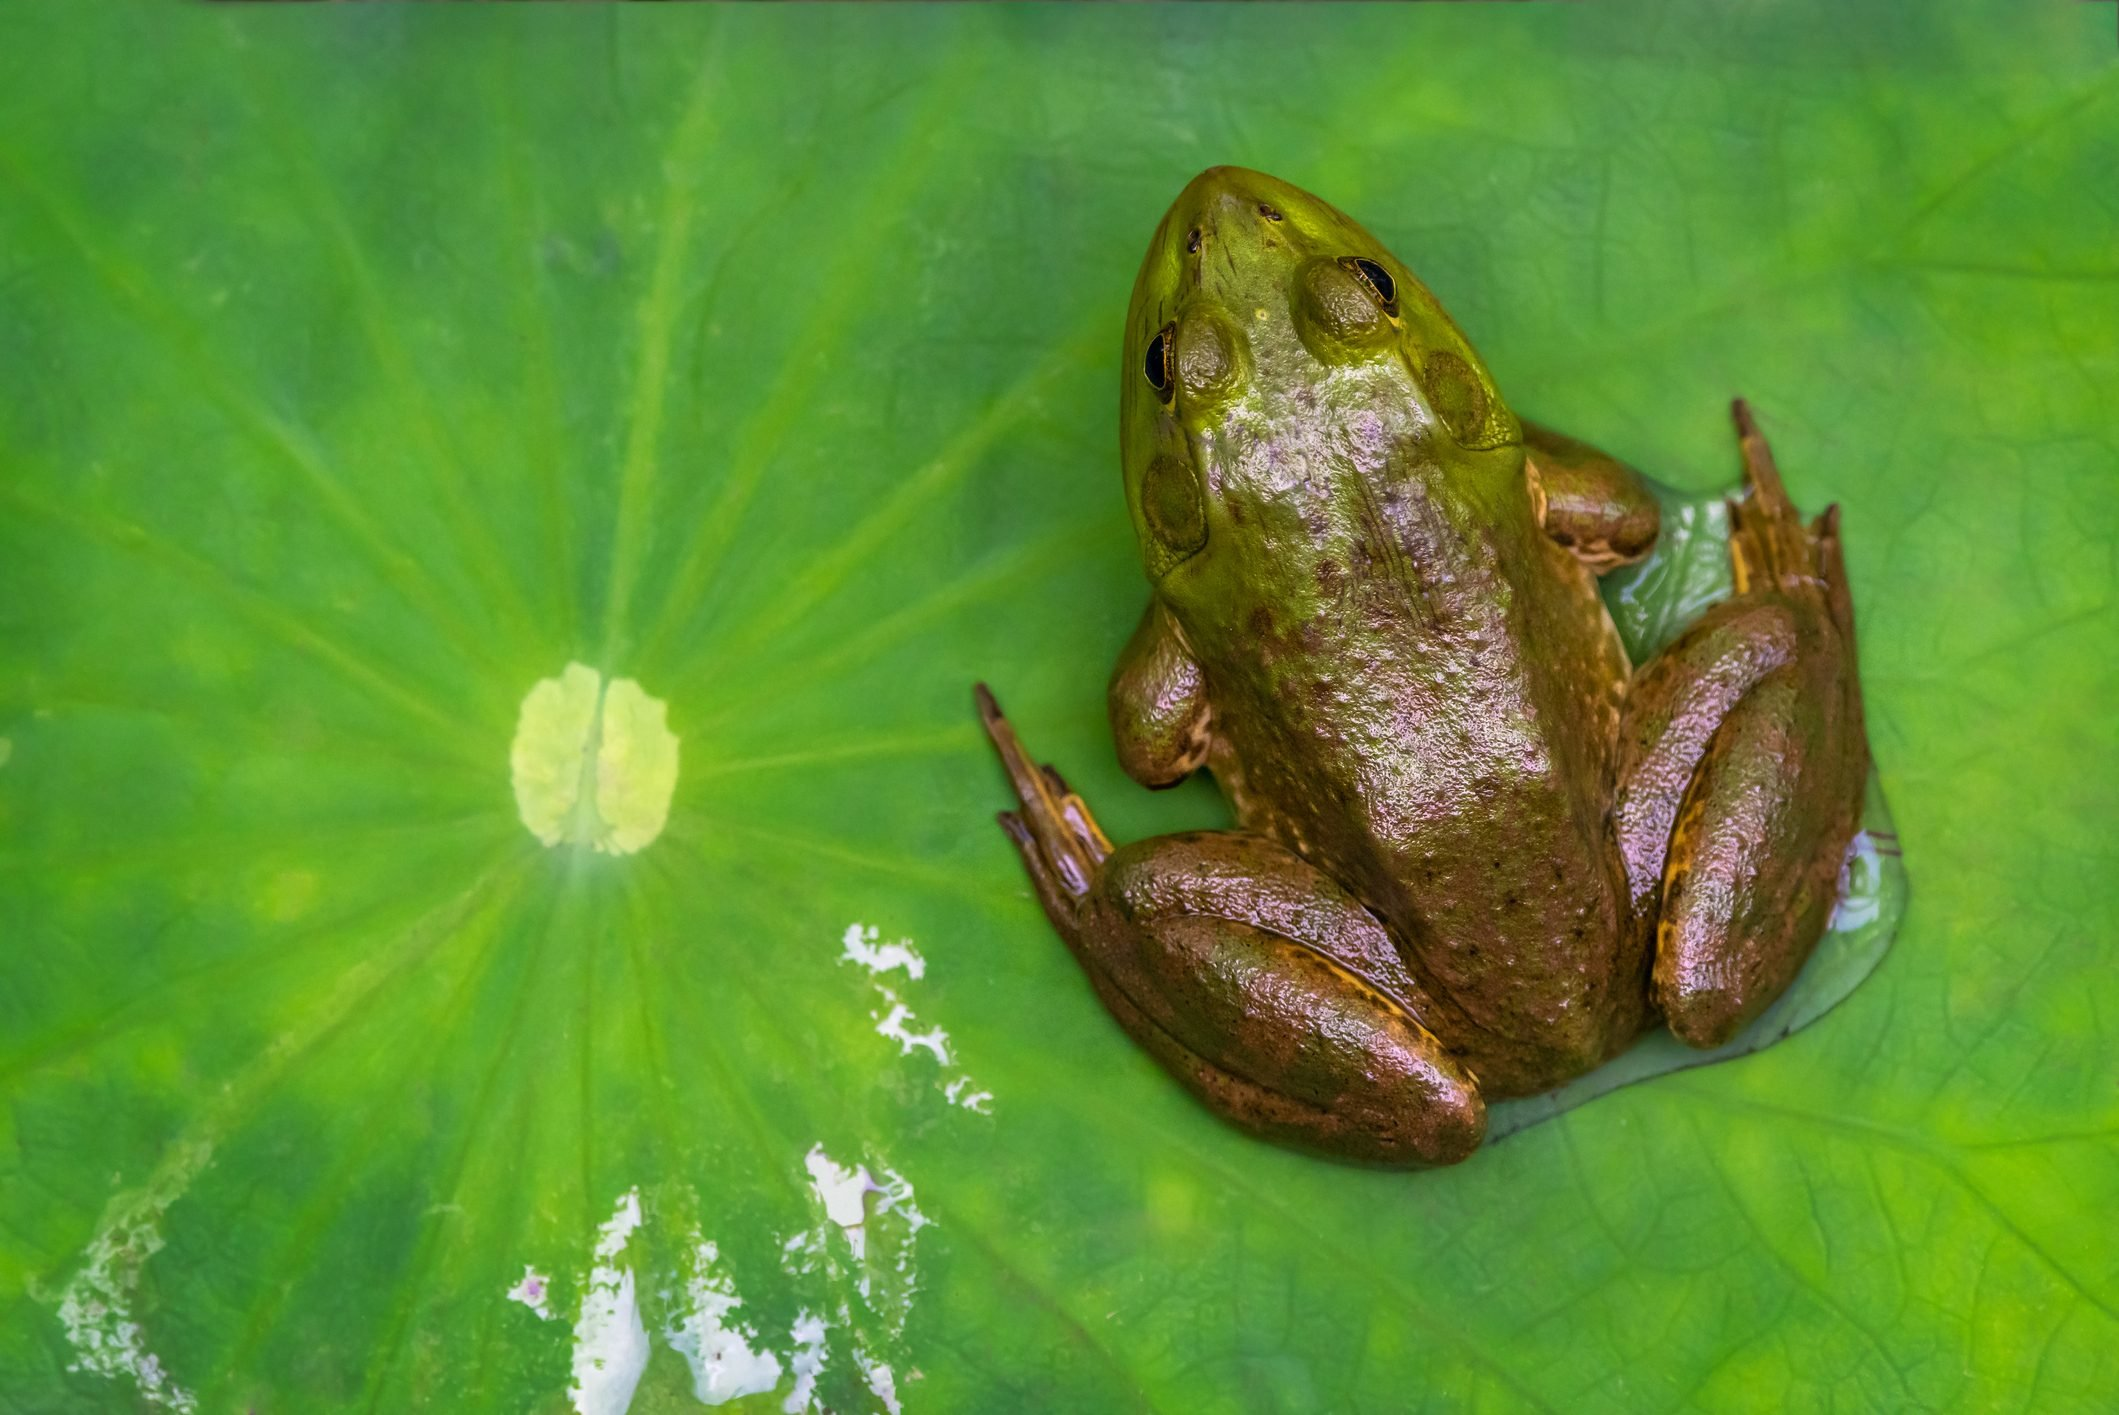 Common frog sitting on a water lily